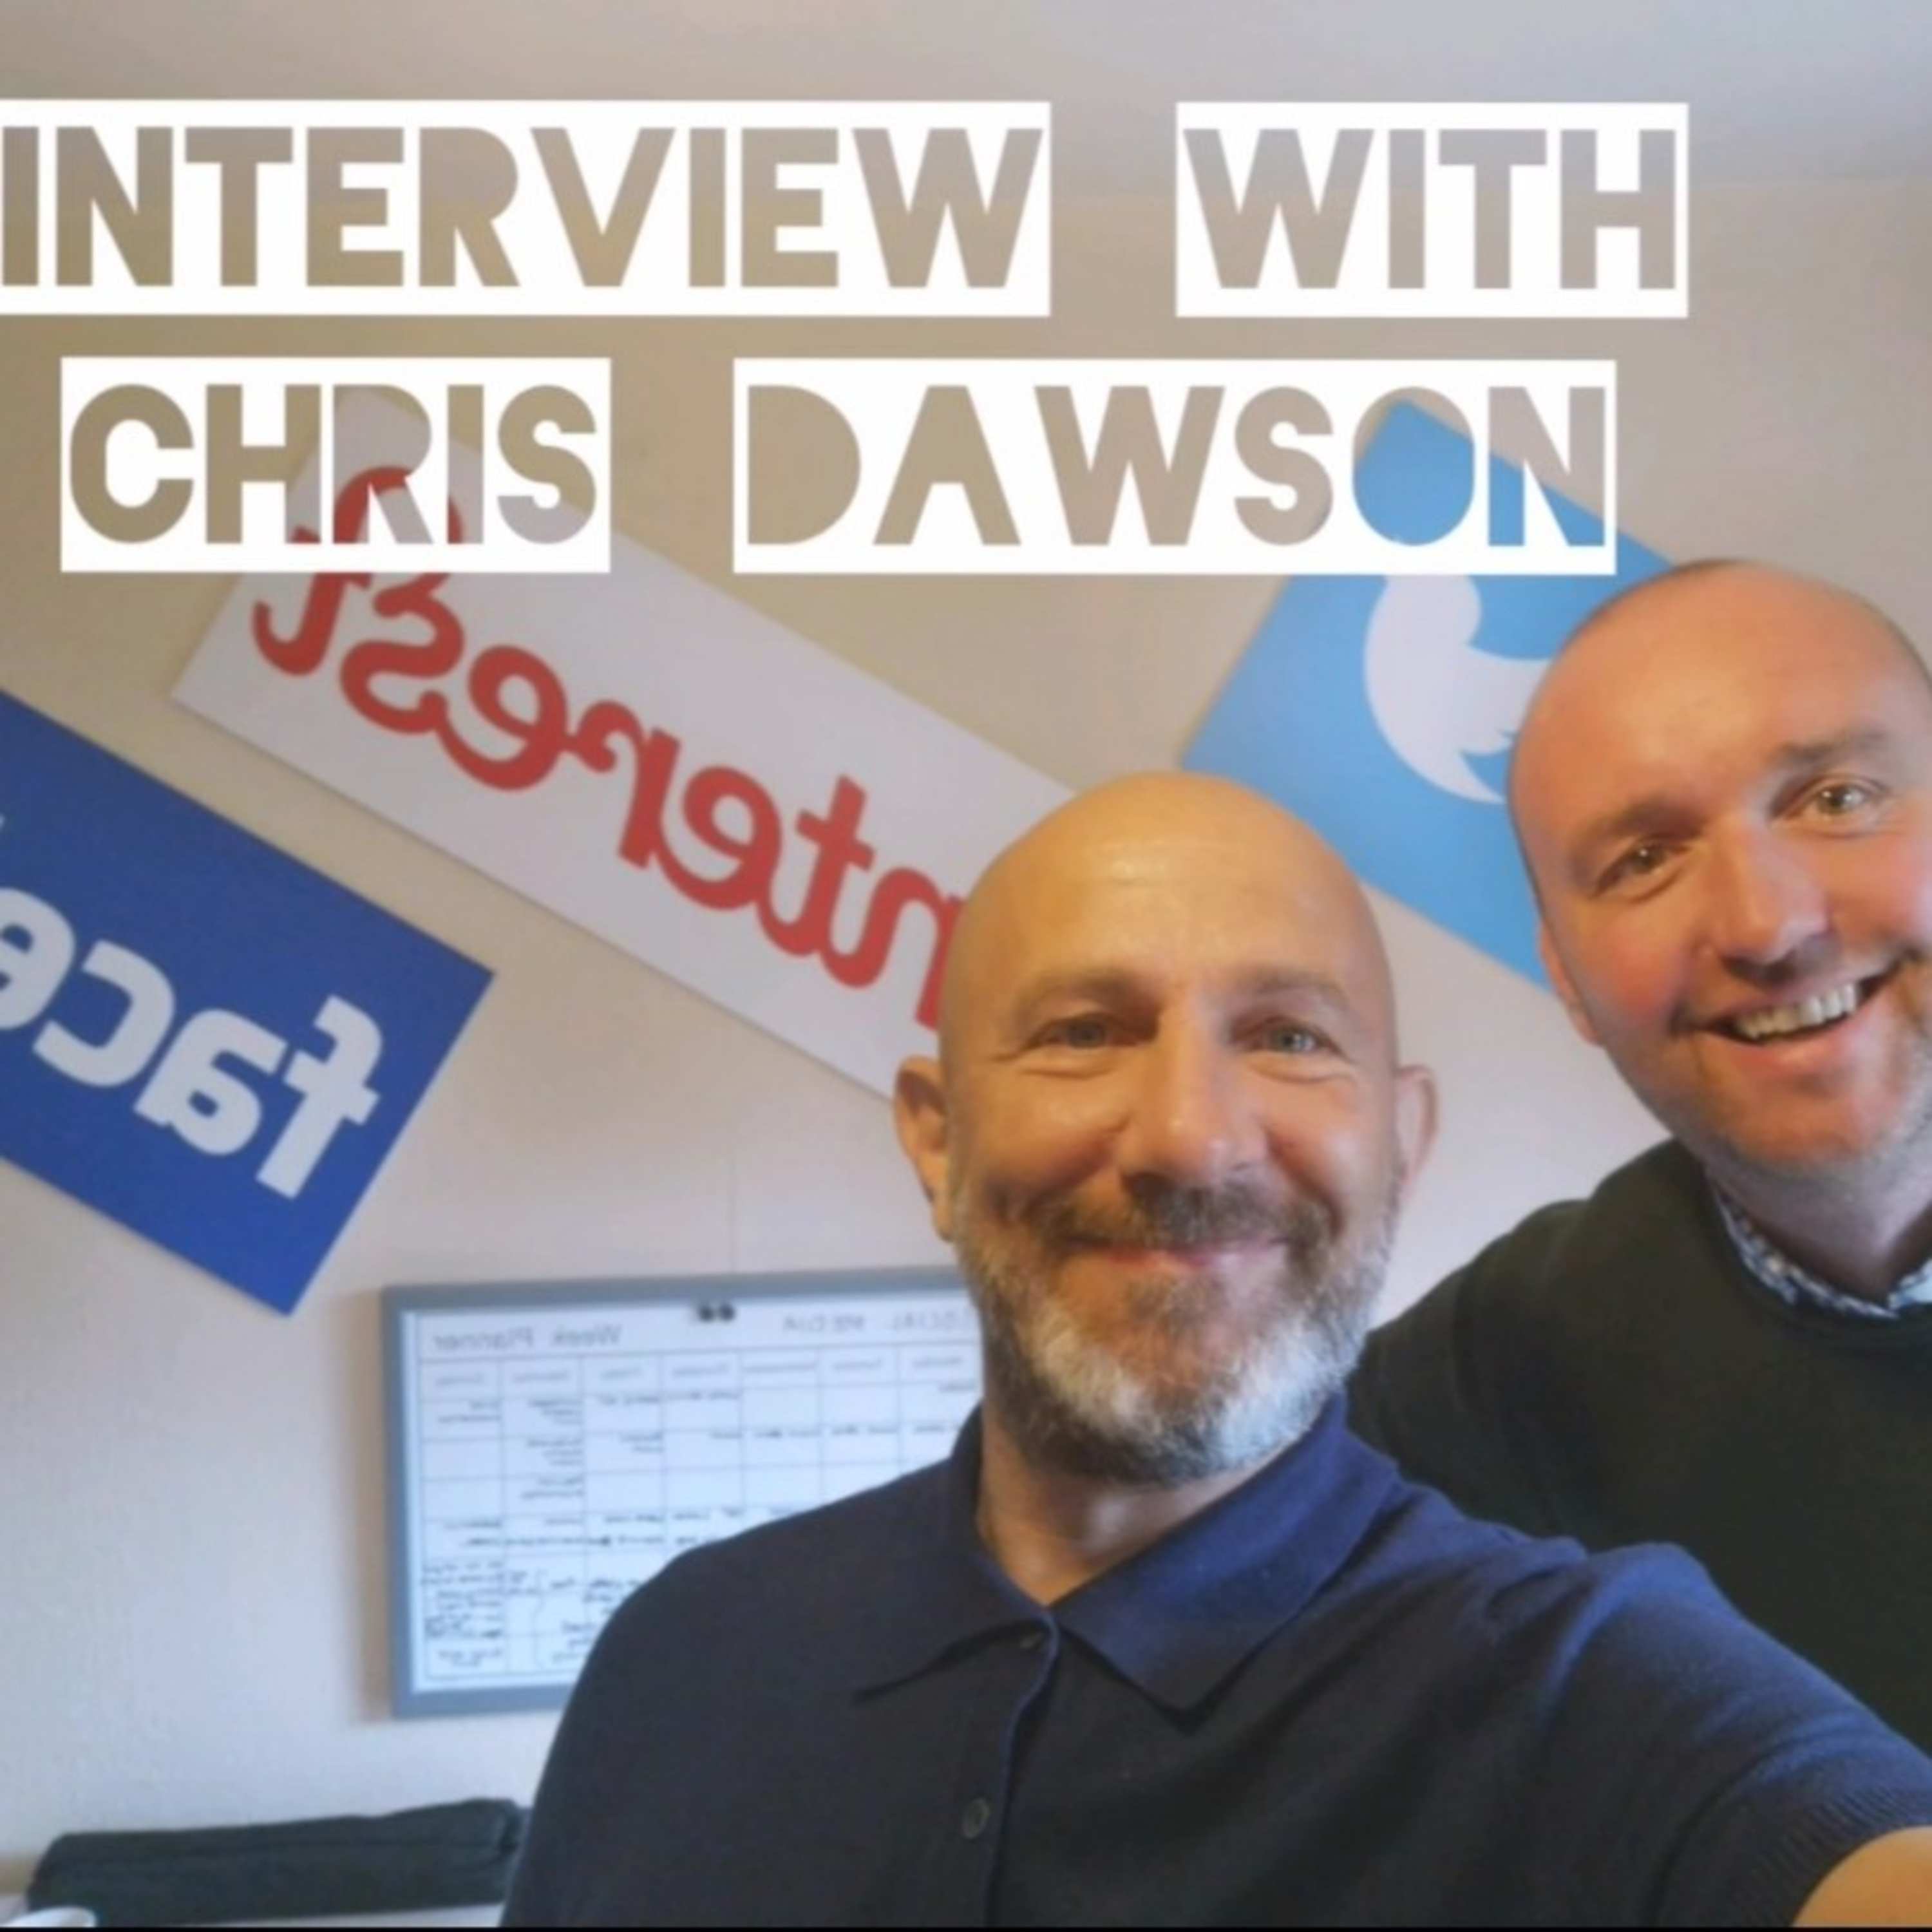 Interview with Leading Sales Trainer Chris Dawson